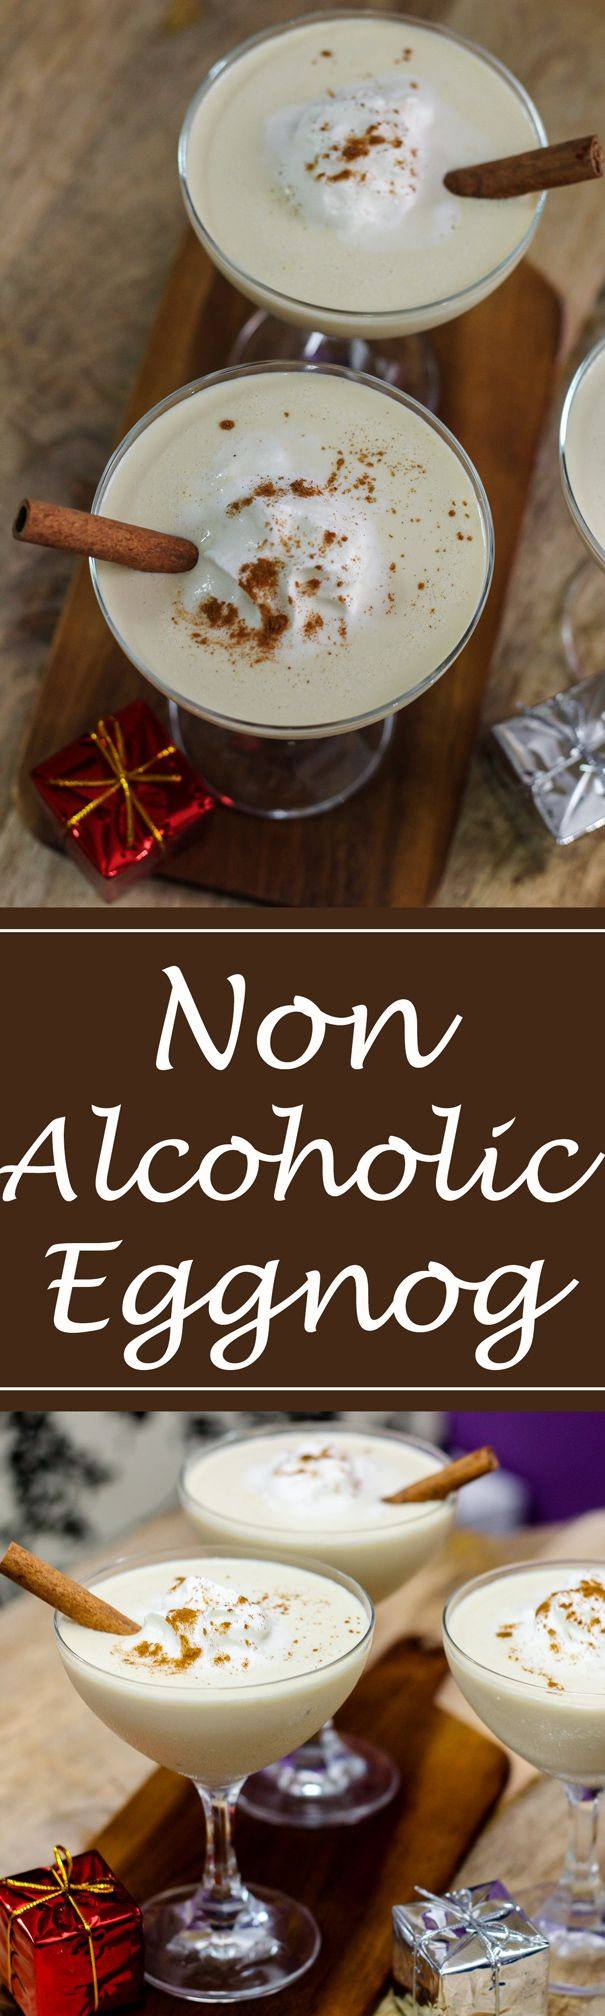 You'll be blown away by the goodness of this decadent and extremely smooth non-alcoholic eggnog.